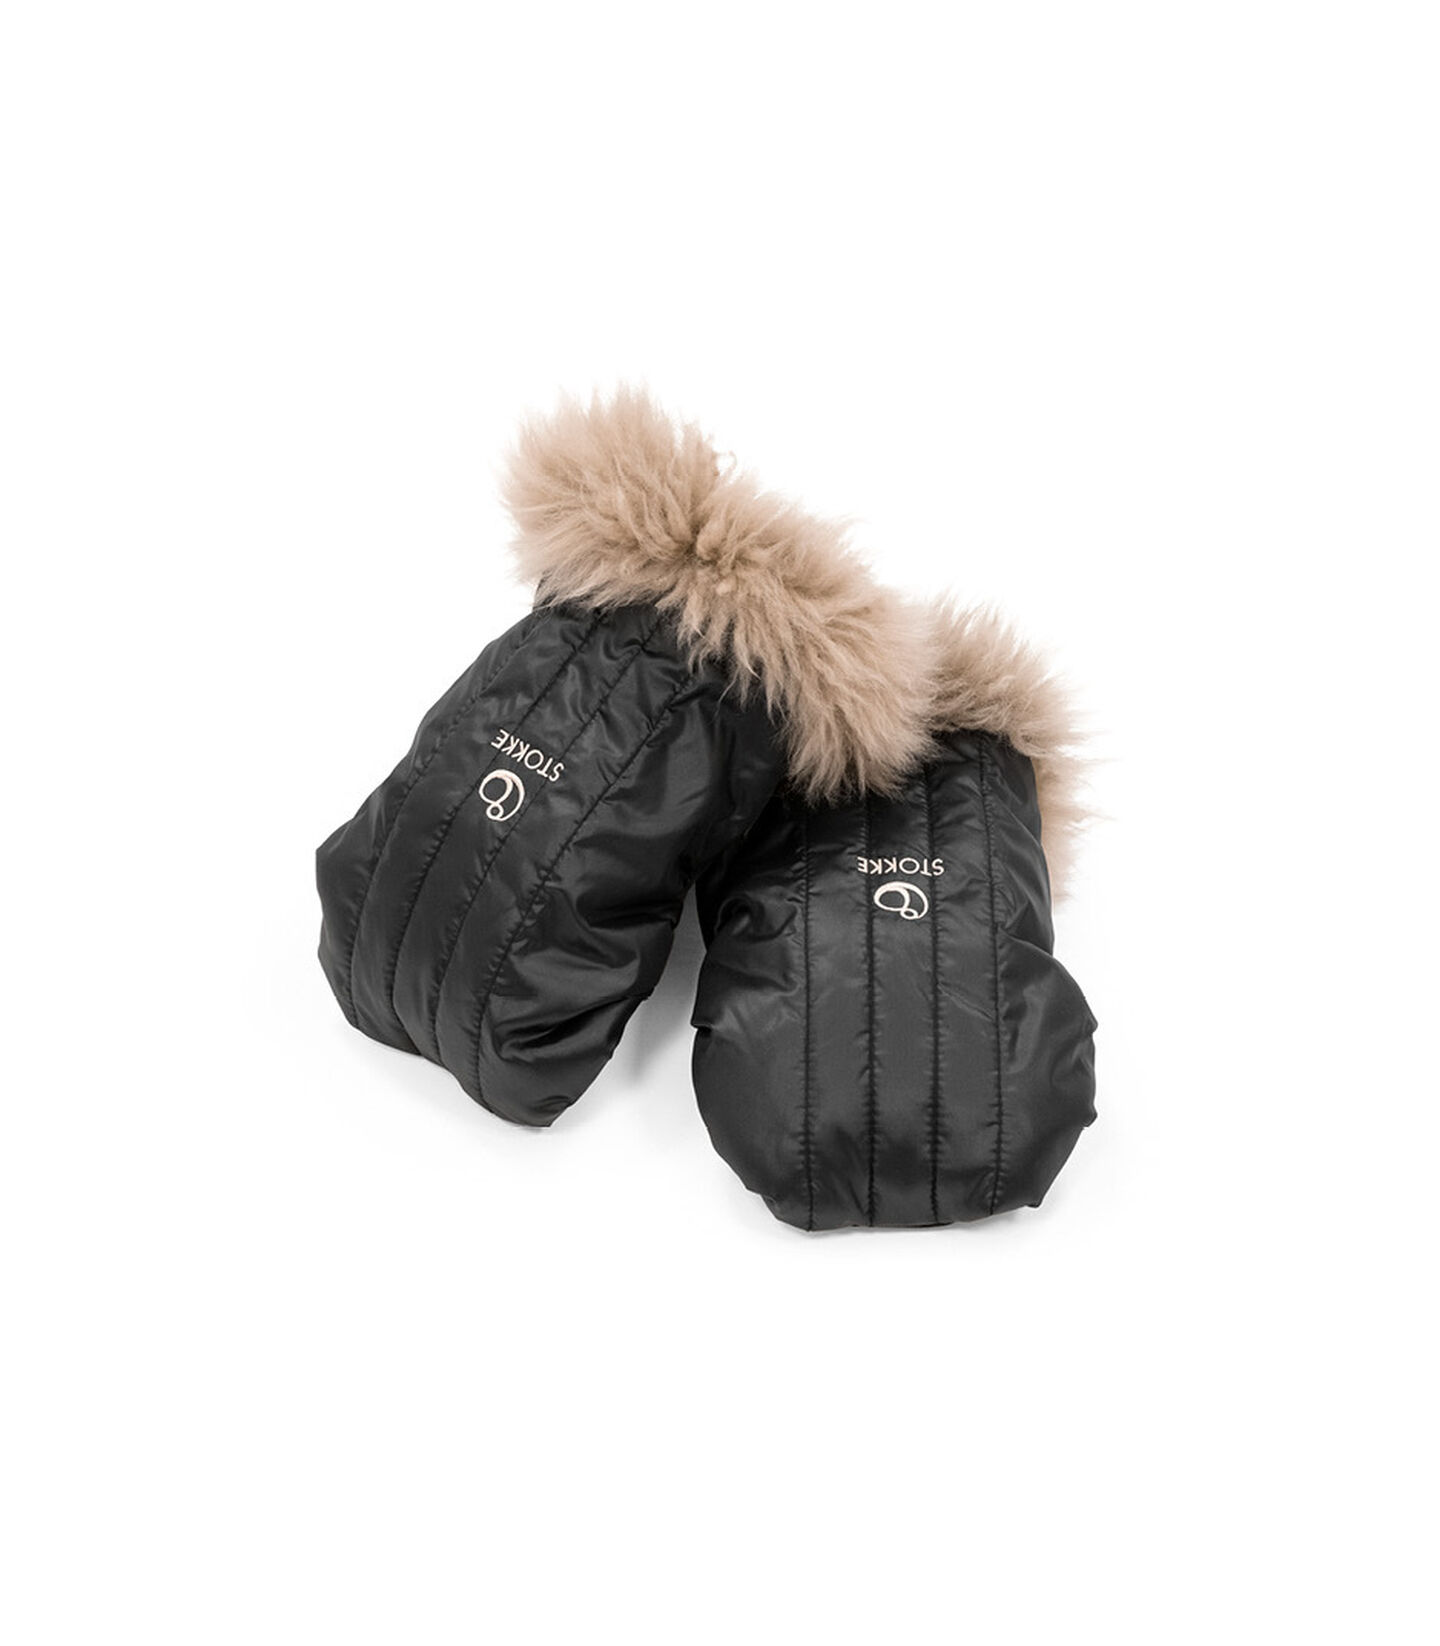 Stokke® Stroller Mittens, Onyx Black. Part of Stokke® Stroller Winter Kit.